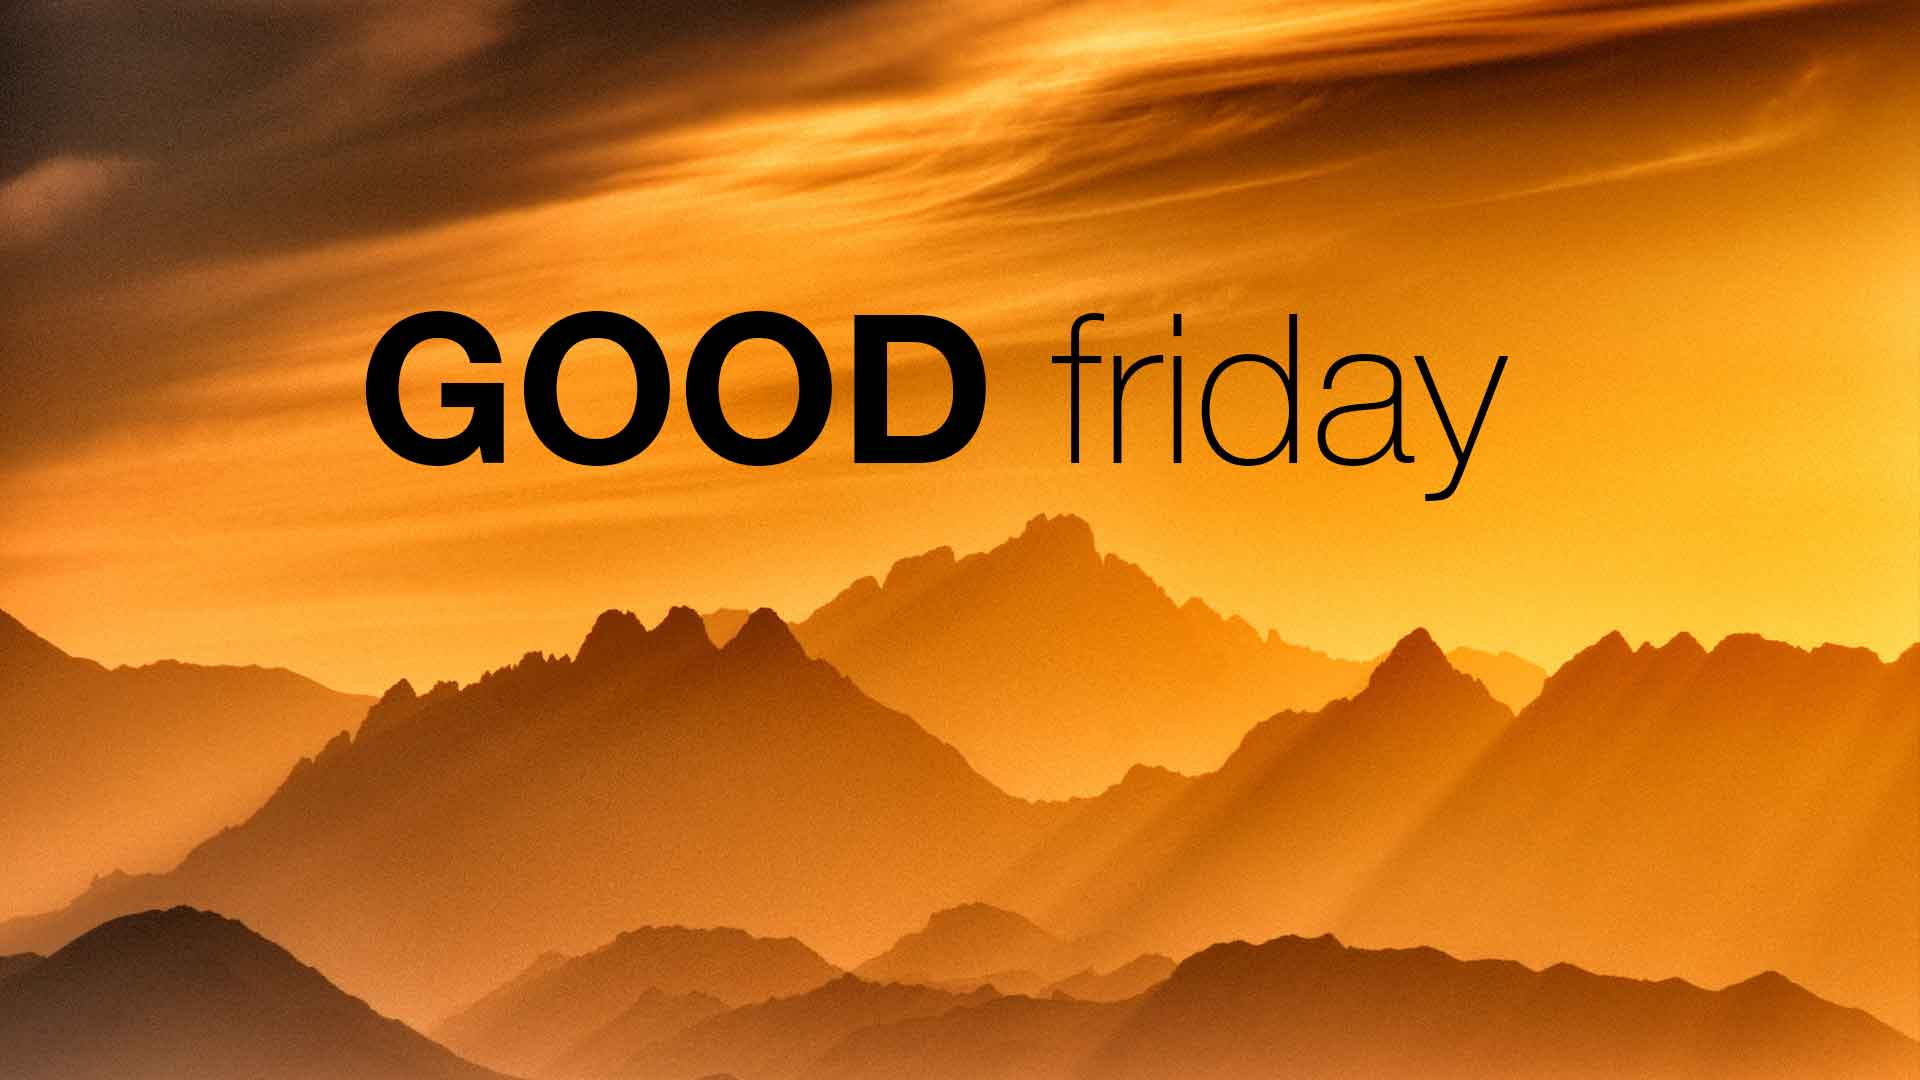 Calendar Good Friday : Today is good friday celebrating easter weekend healthy